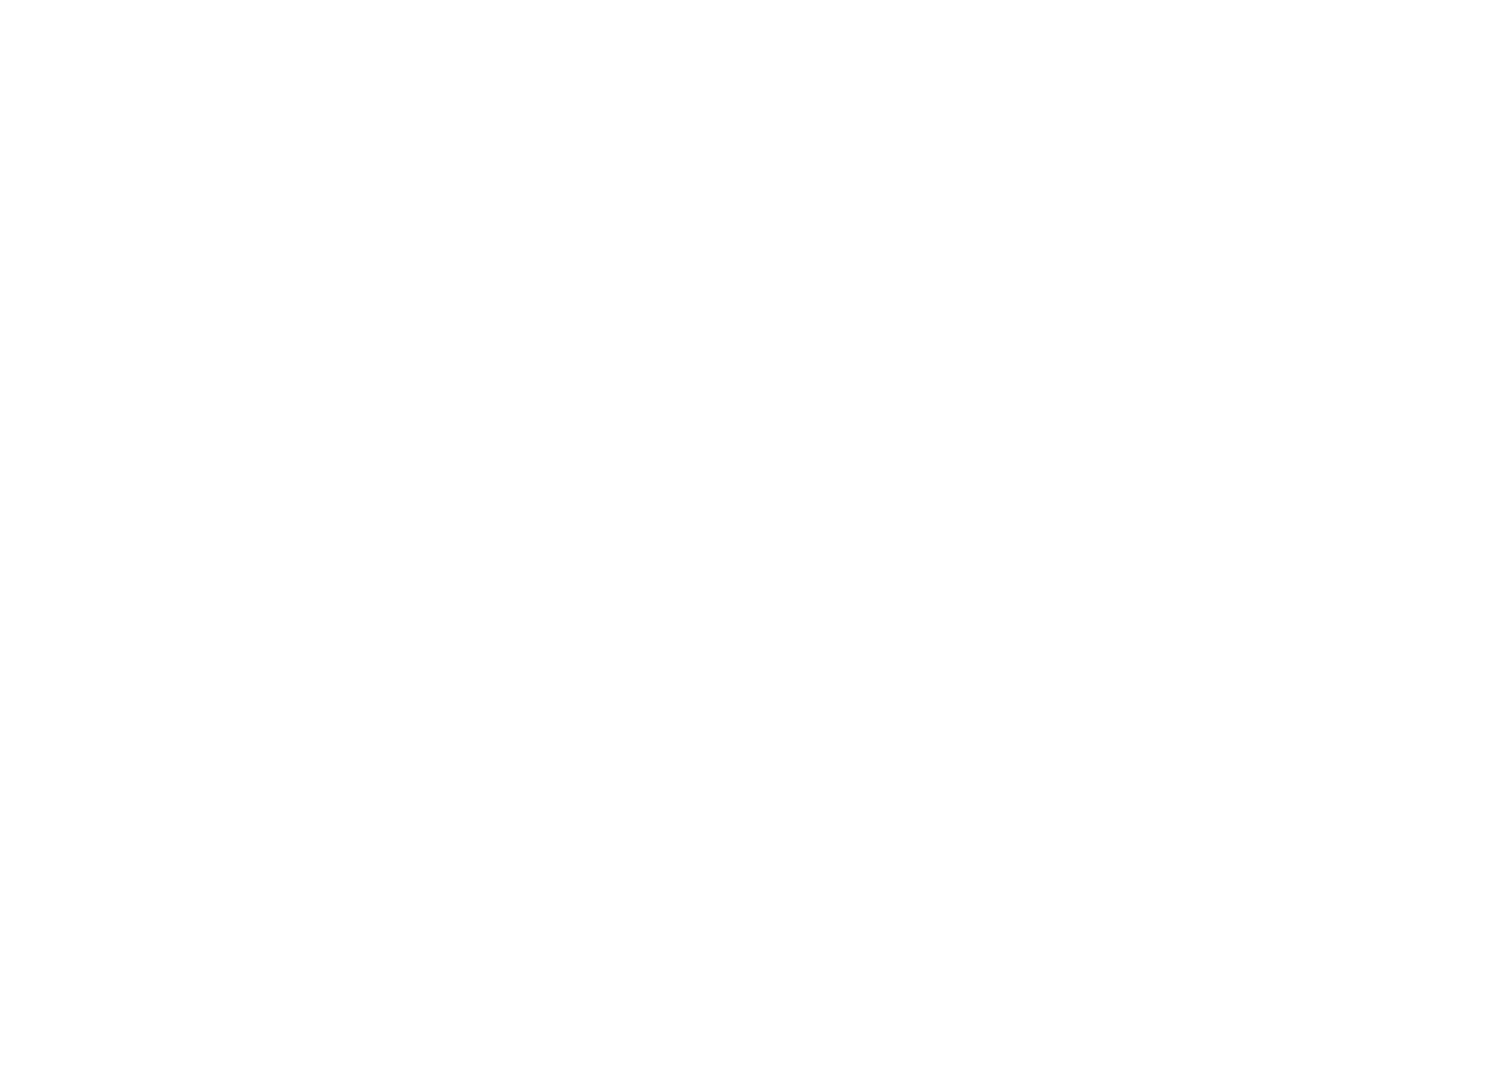 Riverside Boat Club